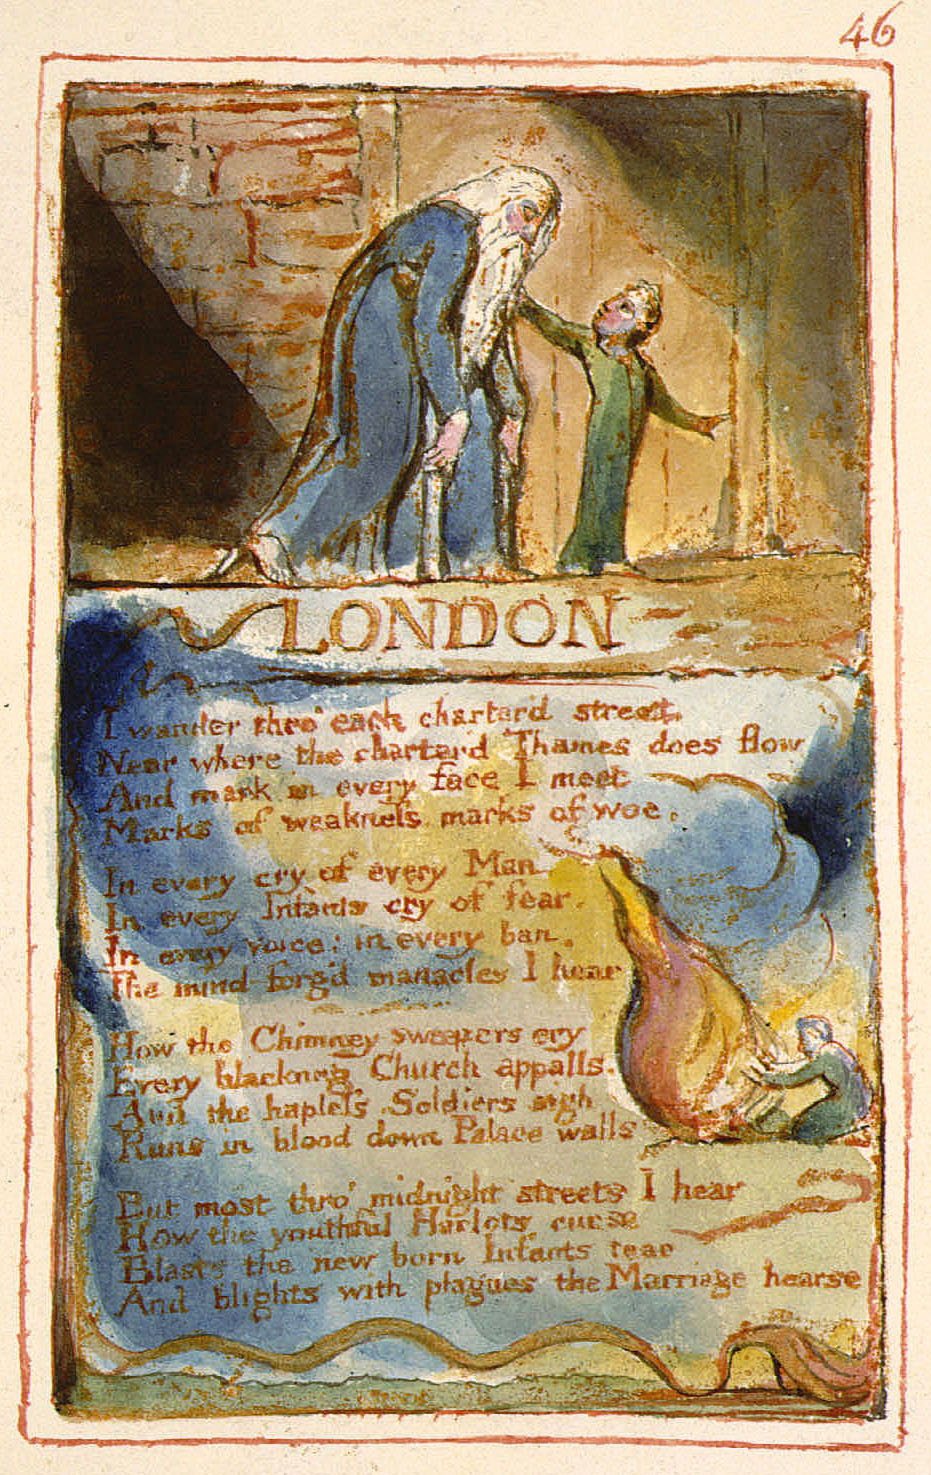 London William Blake Poem Wikipedia